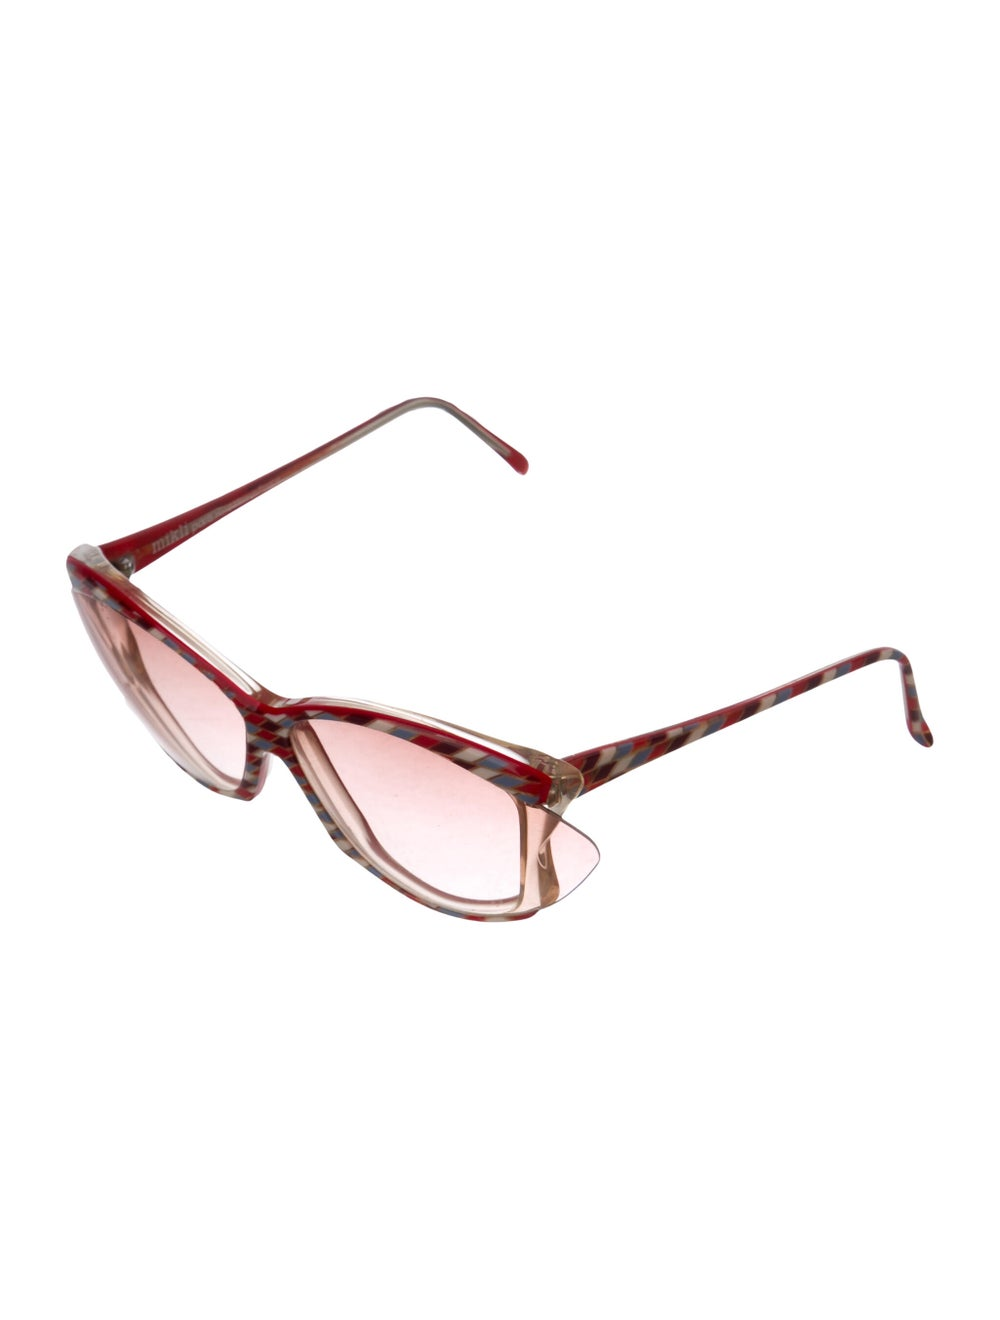 Alain Mikli Oversize Tinted Sunglasses Red - image 2